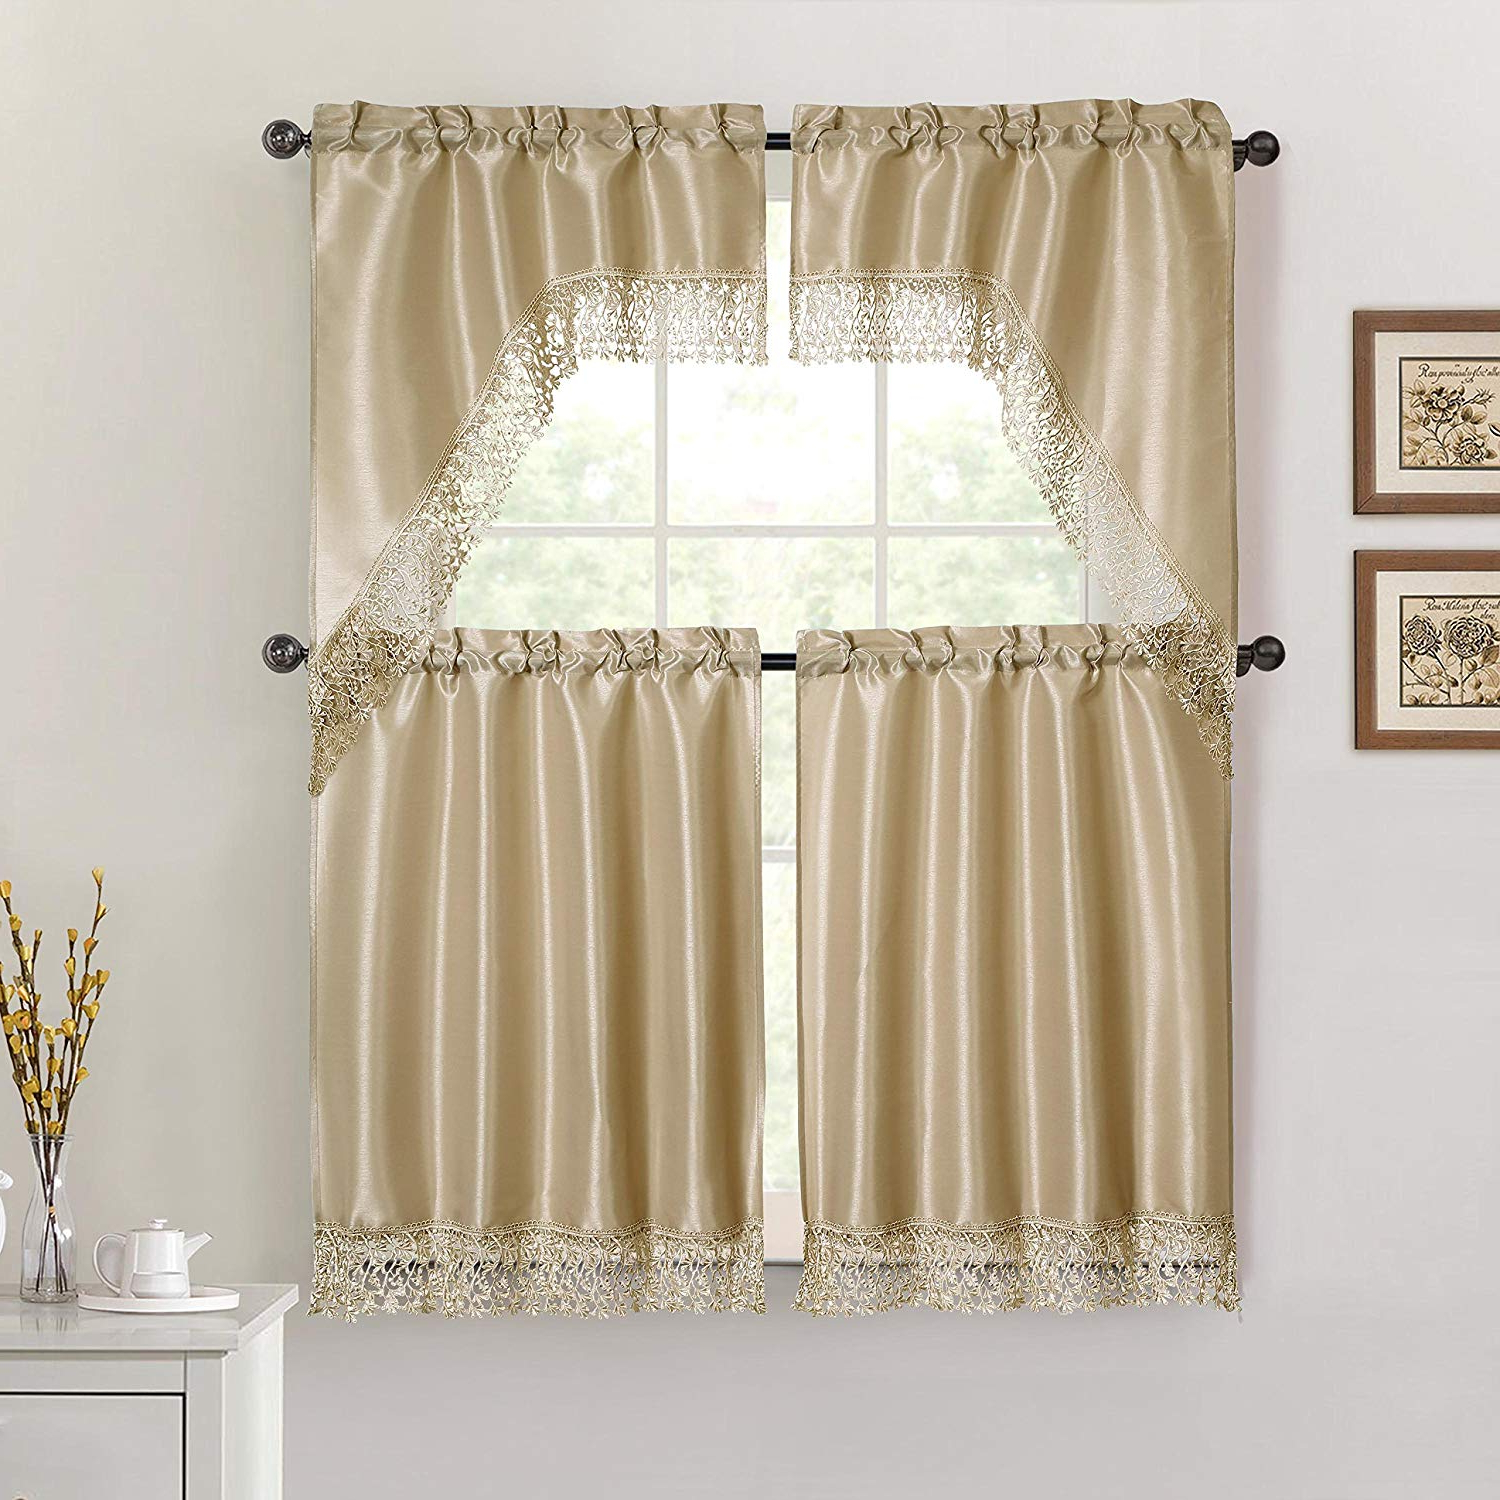 Taupe 4 Piece Kitchen Window Curtain Set: Macrame Border, 2 Swag And 2 Tier Panels (taupe) Intended For Most Up To Date Cotton Lace 5 Piece Window Tier And Swag Sets (View 18 of 20)